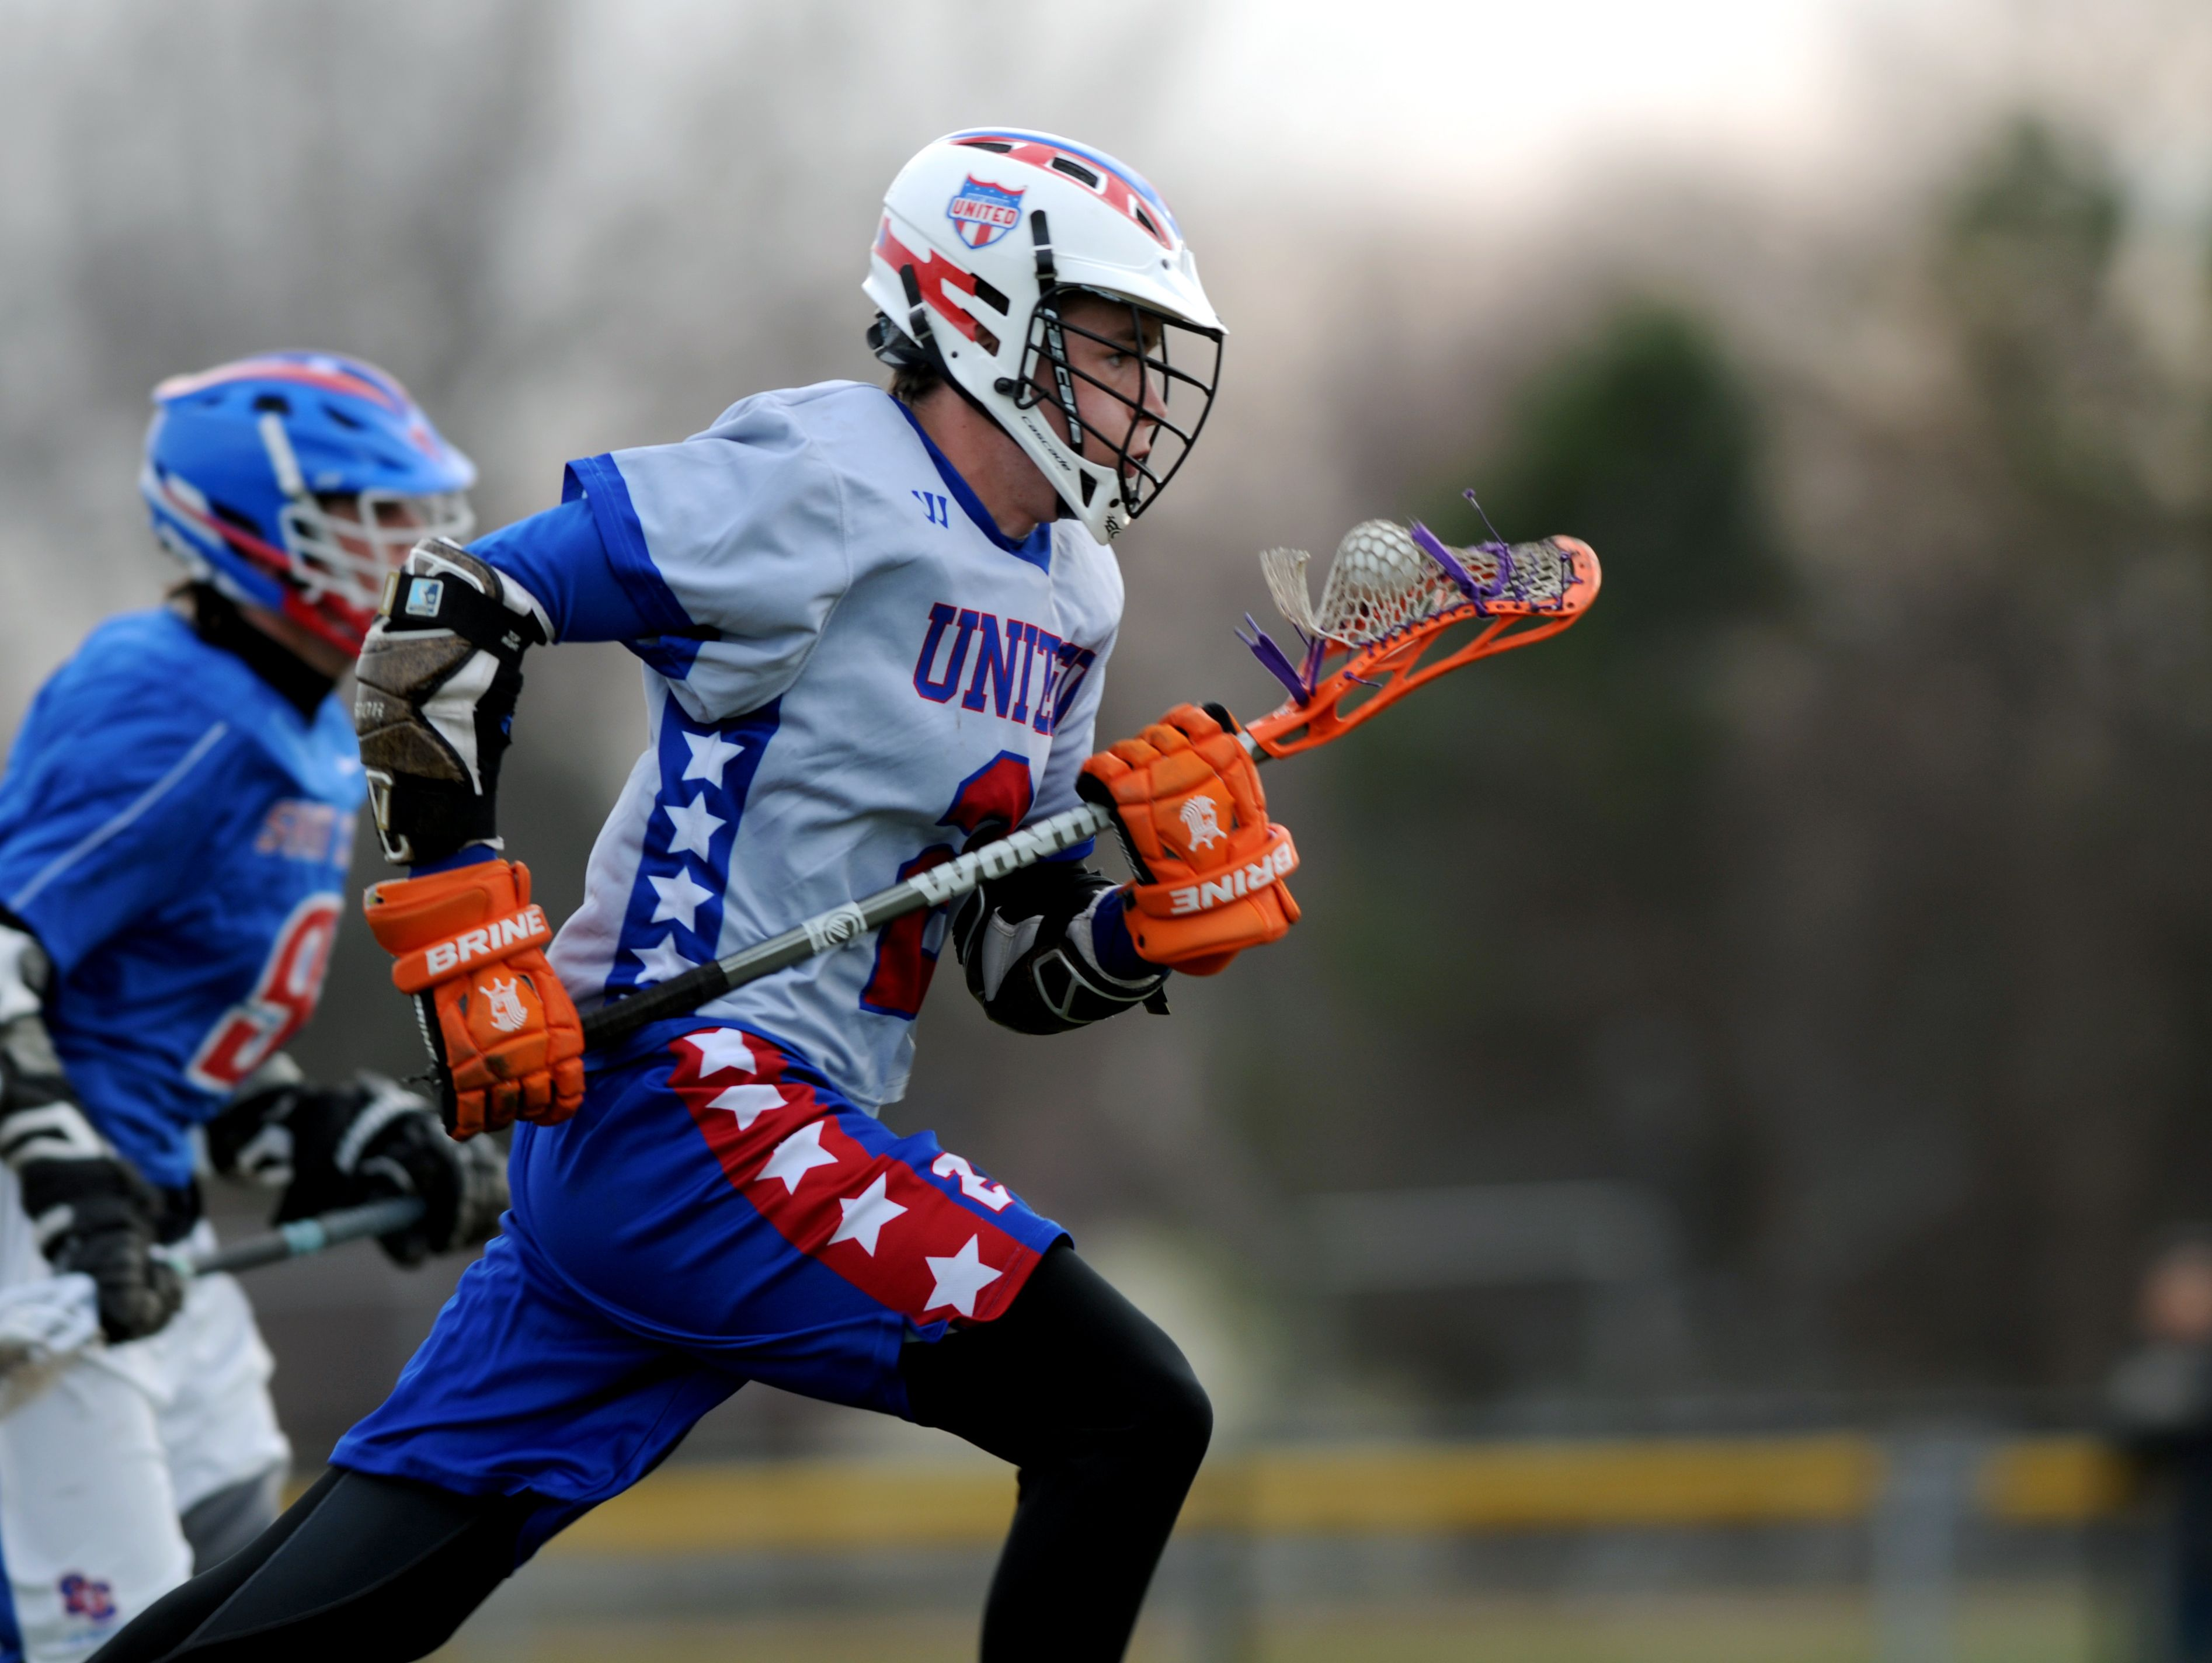 Port Huron United's Austin O'Hare brings the ball up field Monday, April 11, during a Lacrosse match against St. Clair at Port Huron Northern.